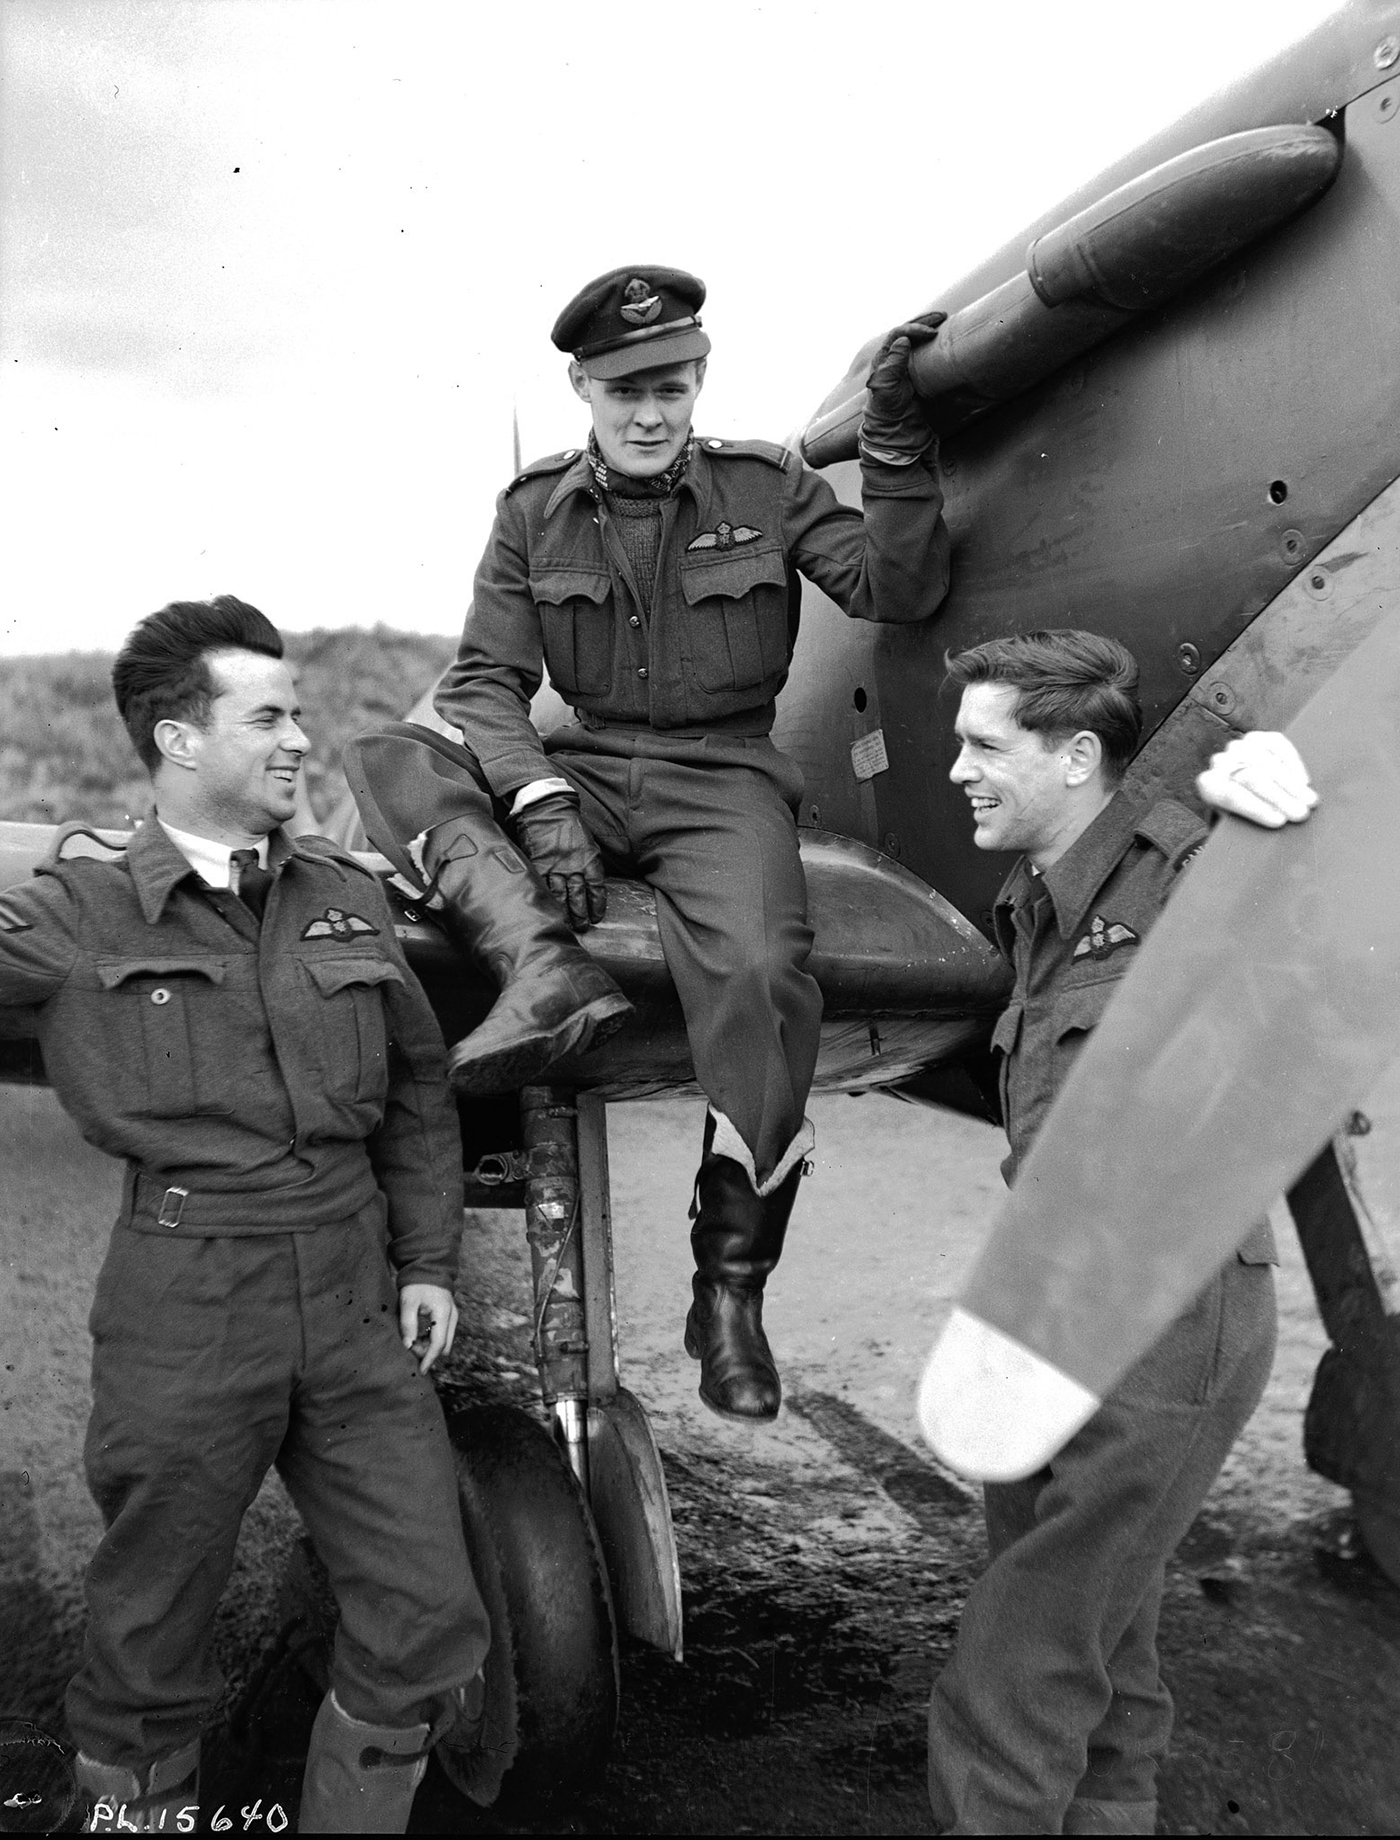 In a black and white photograph, a man in uniform sits on the wing of a vintage aircraft; two more stand beside the aircraft.